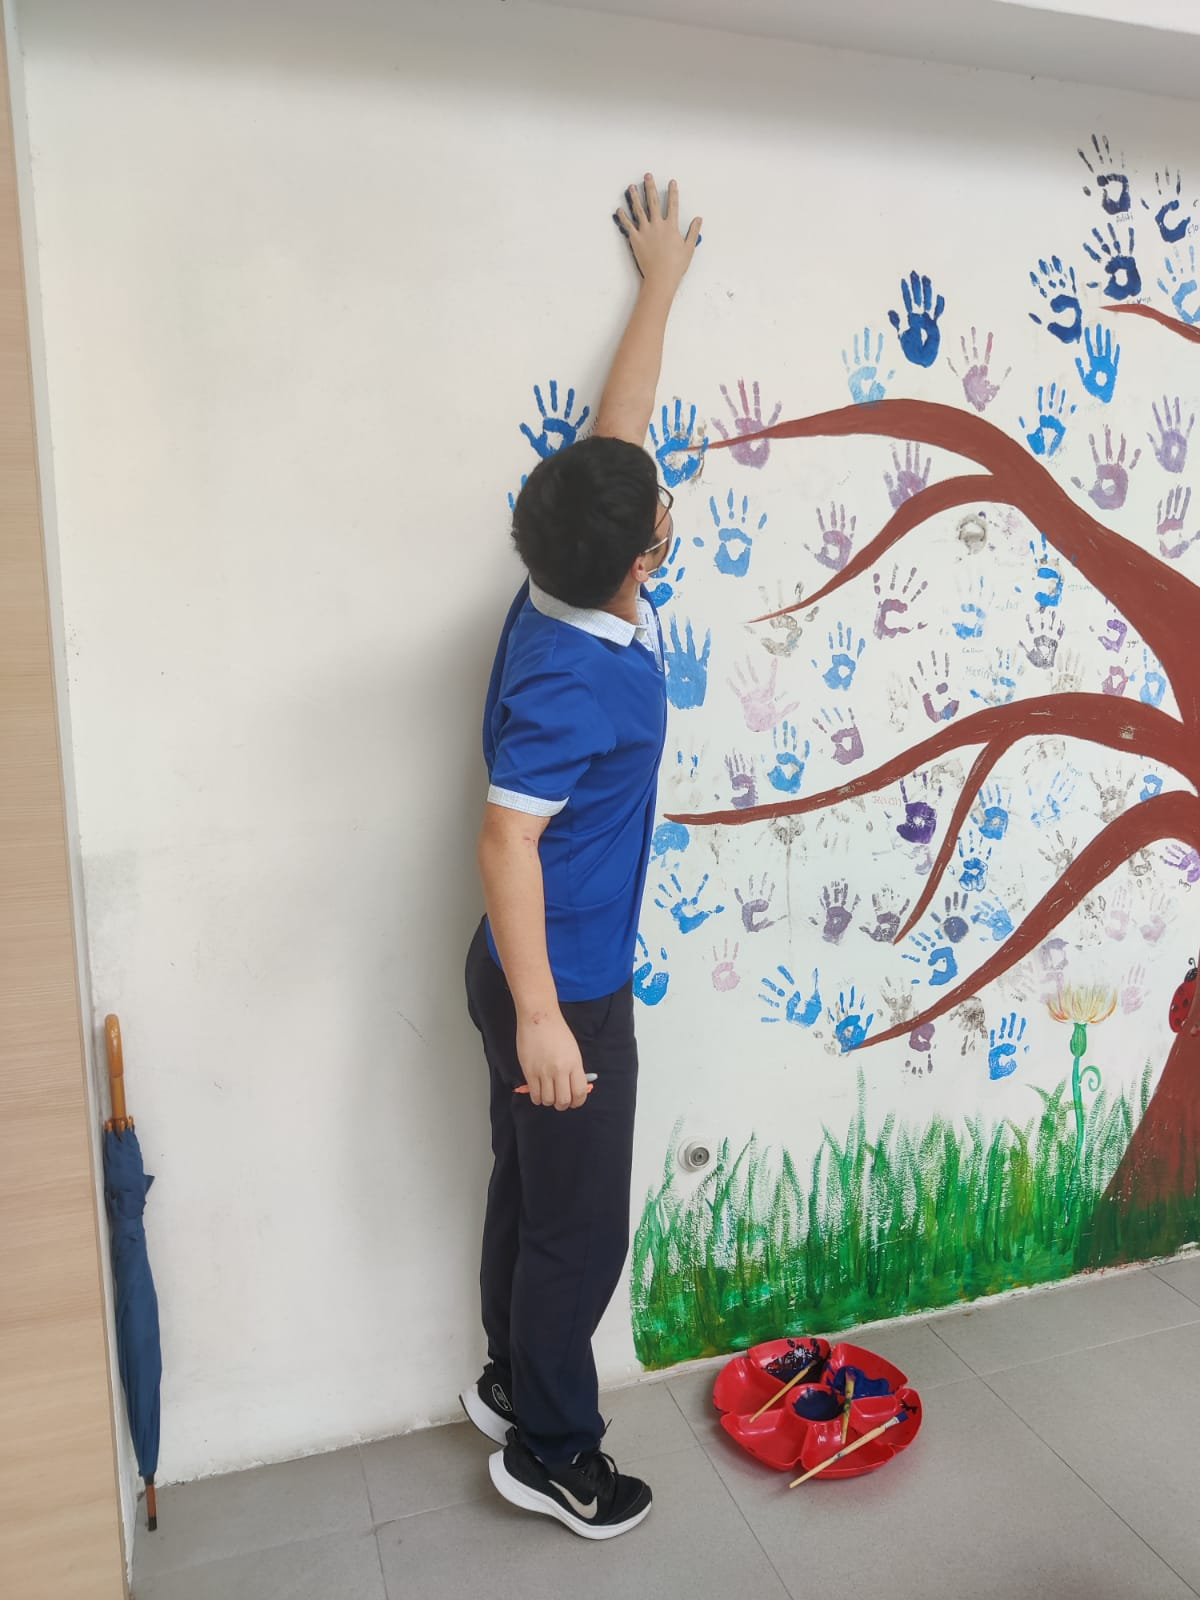 OWIS IBDP students participated in the Think Kindness Challenge